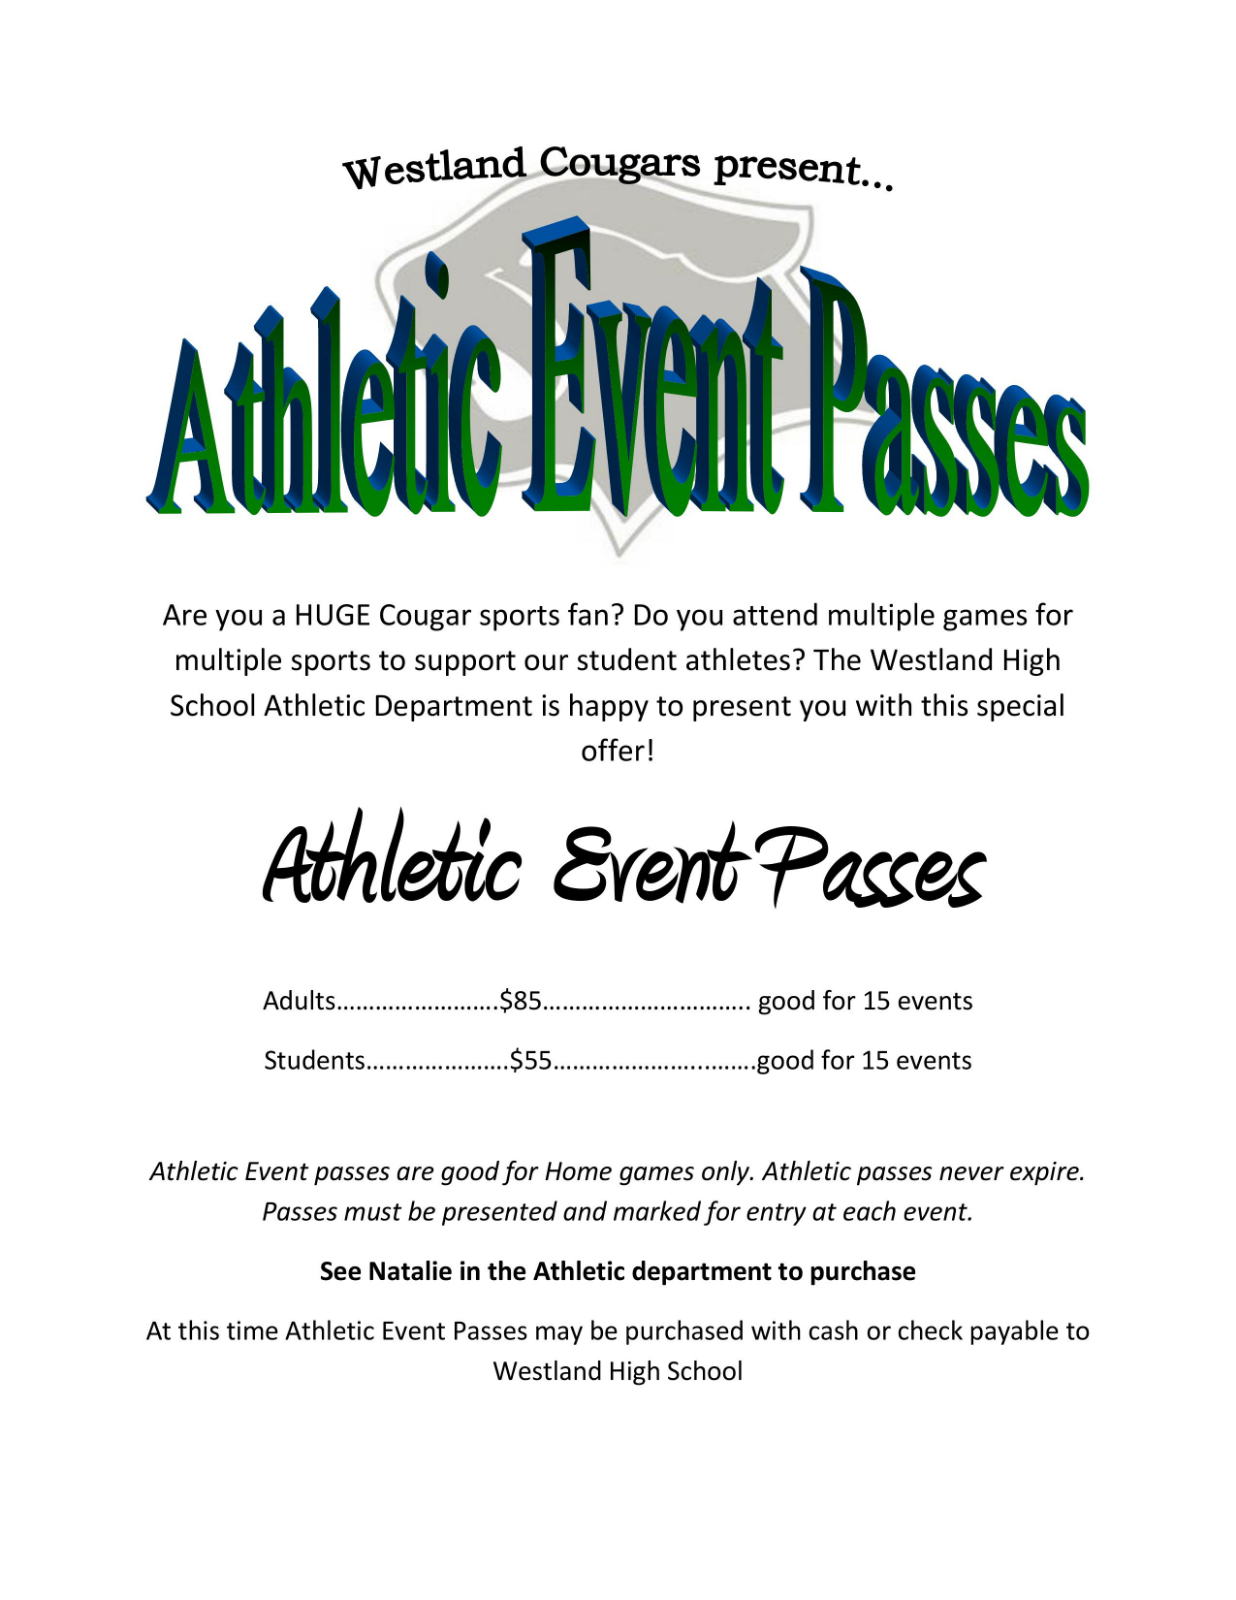 Introducing: Athletic Event Passes